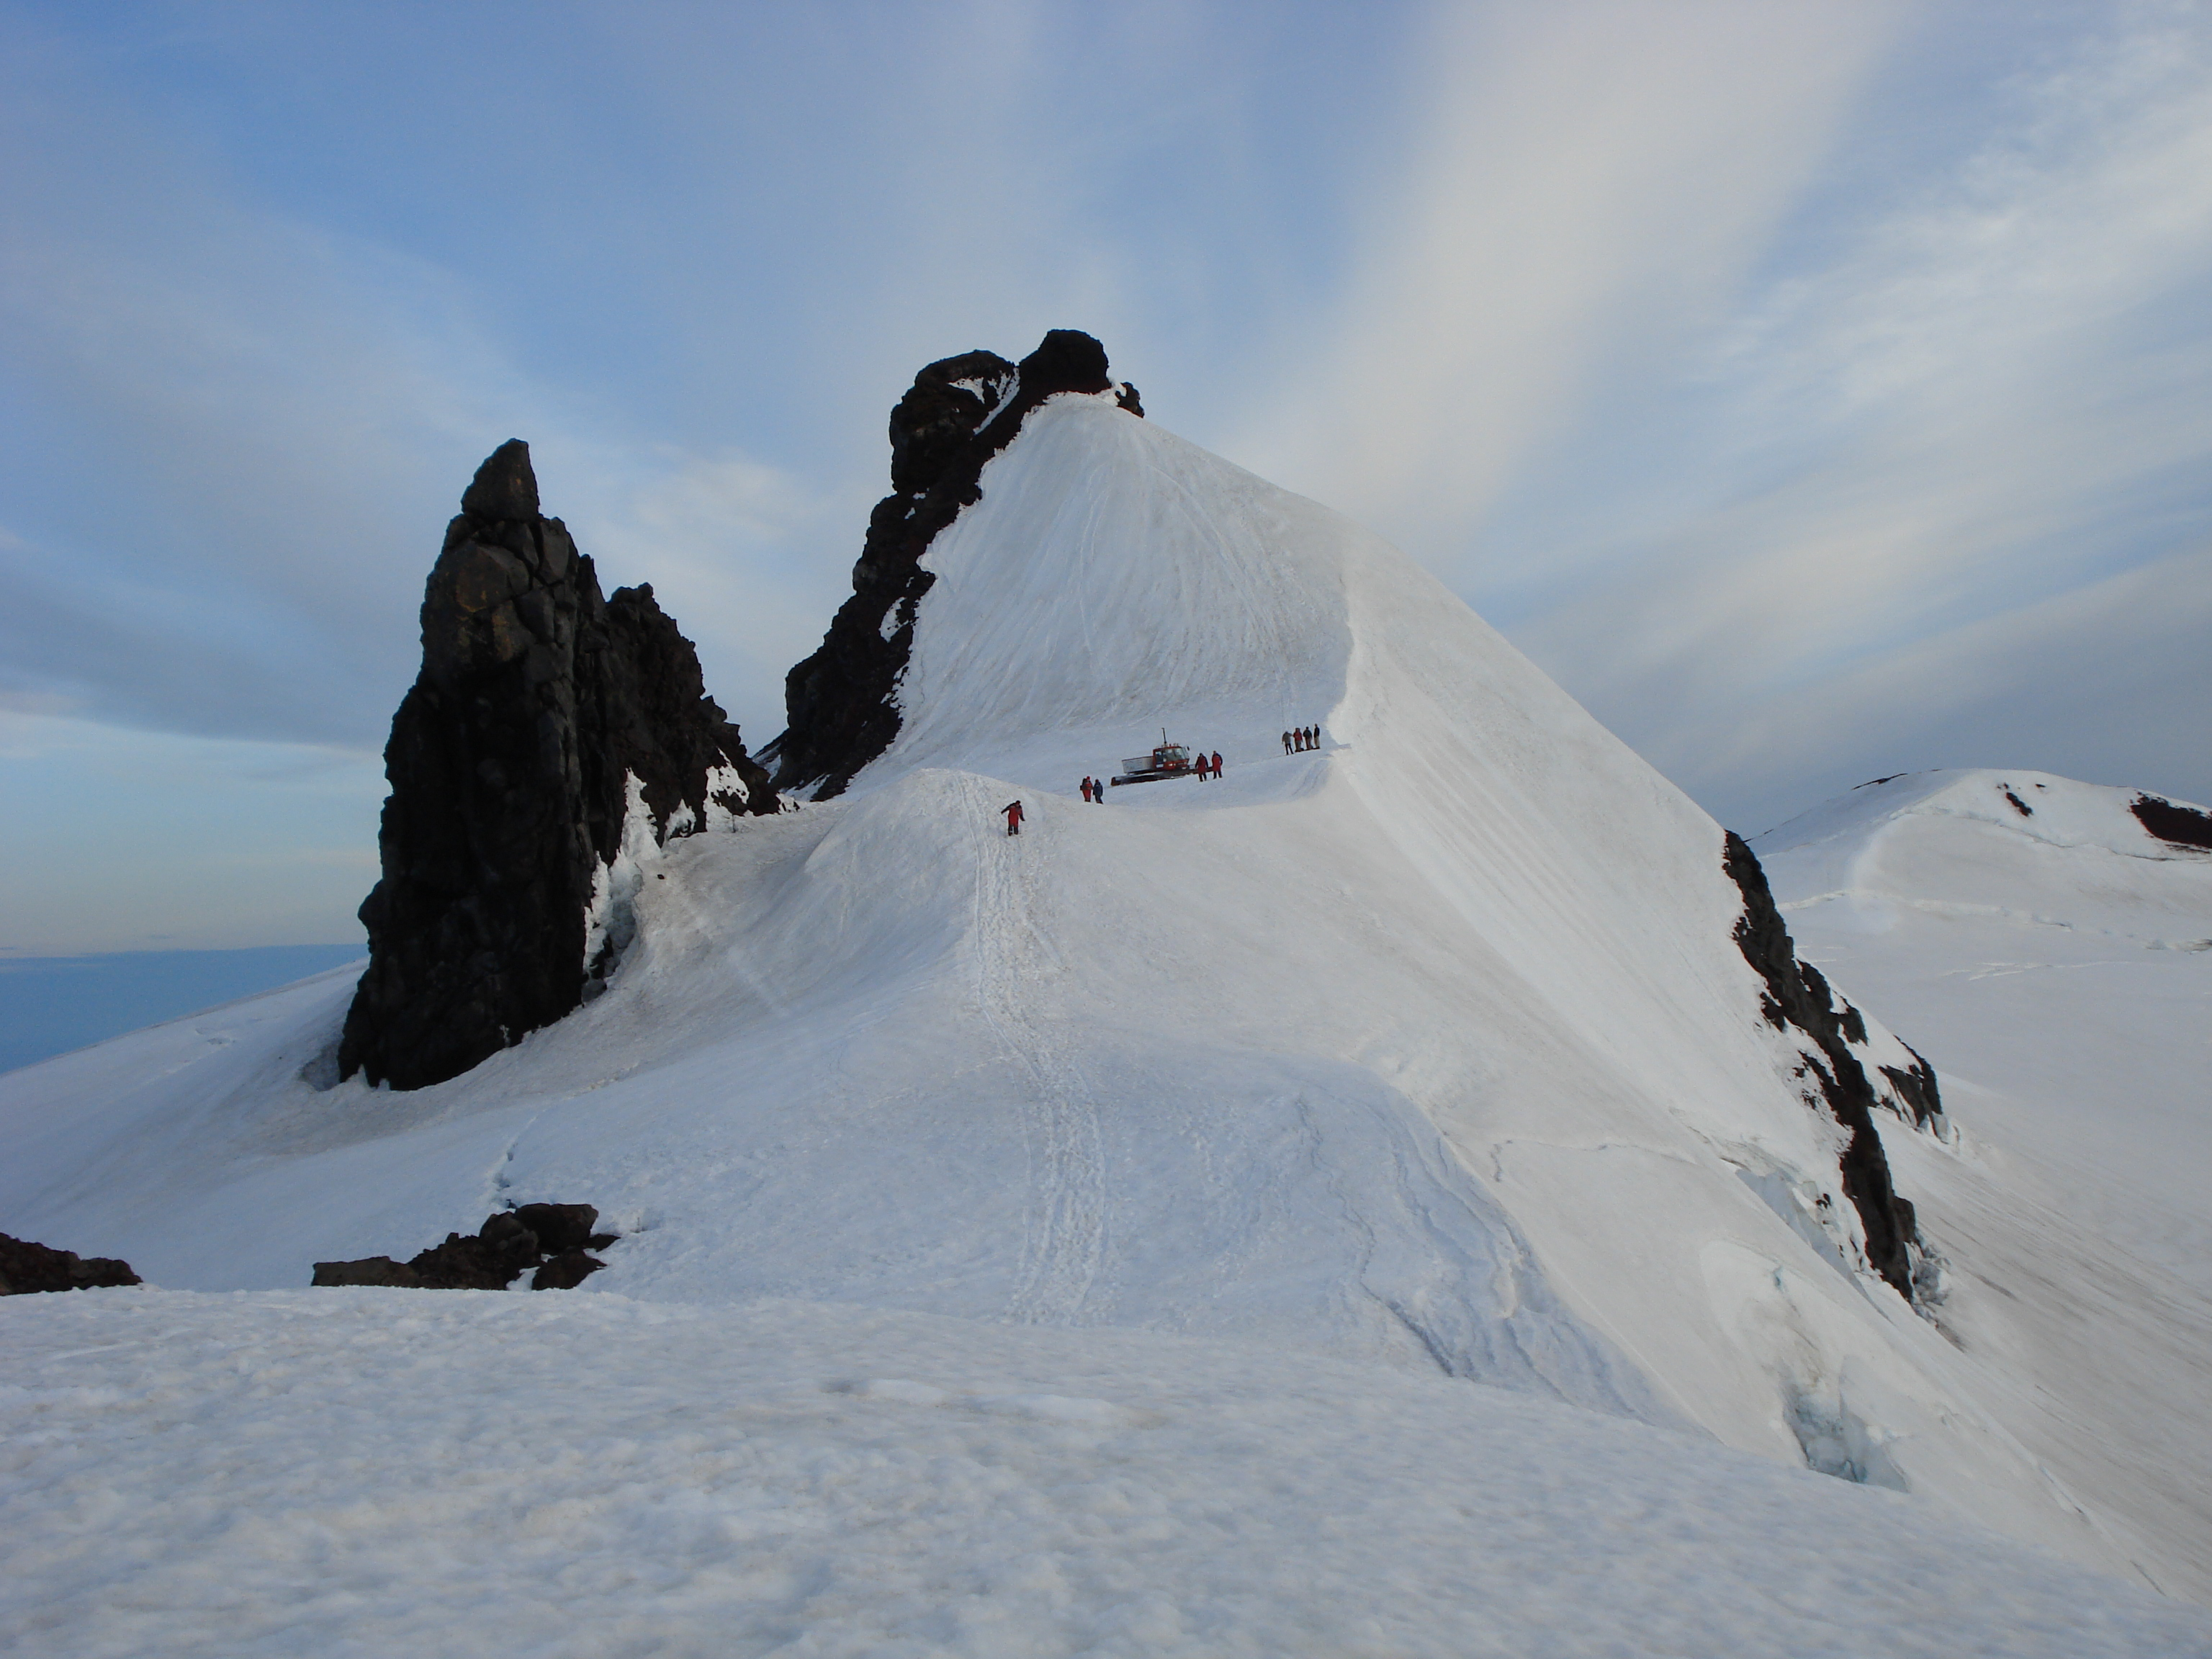 Volcanic plugs at the summit of Snæfellsjökull, Iceland. Photo taken on July 22, 2007.